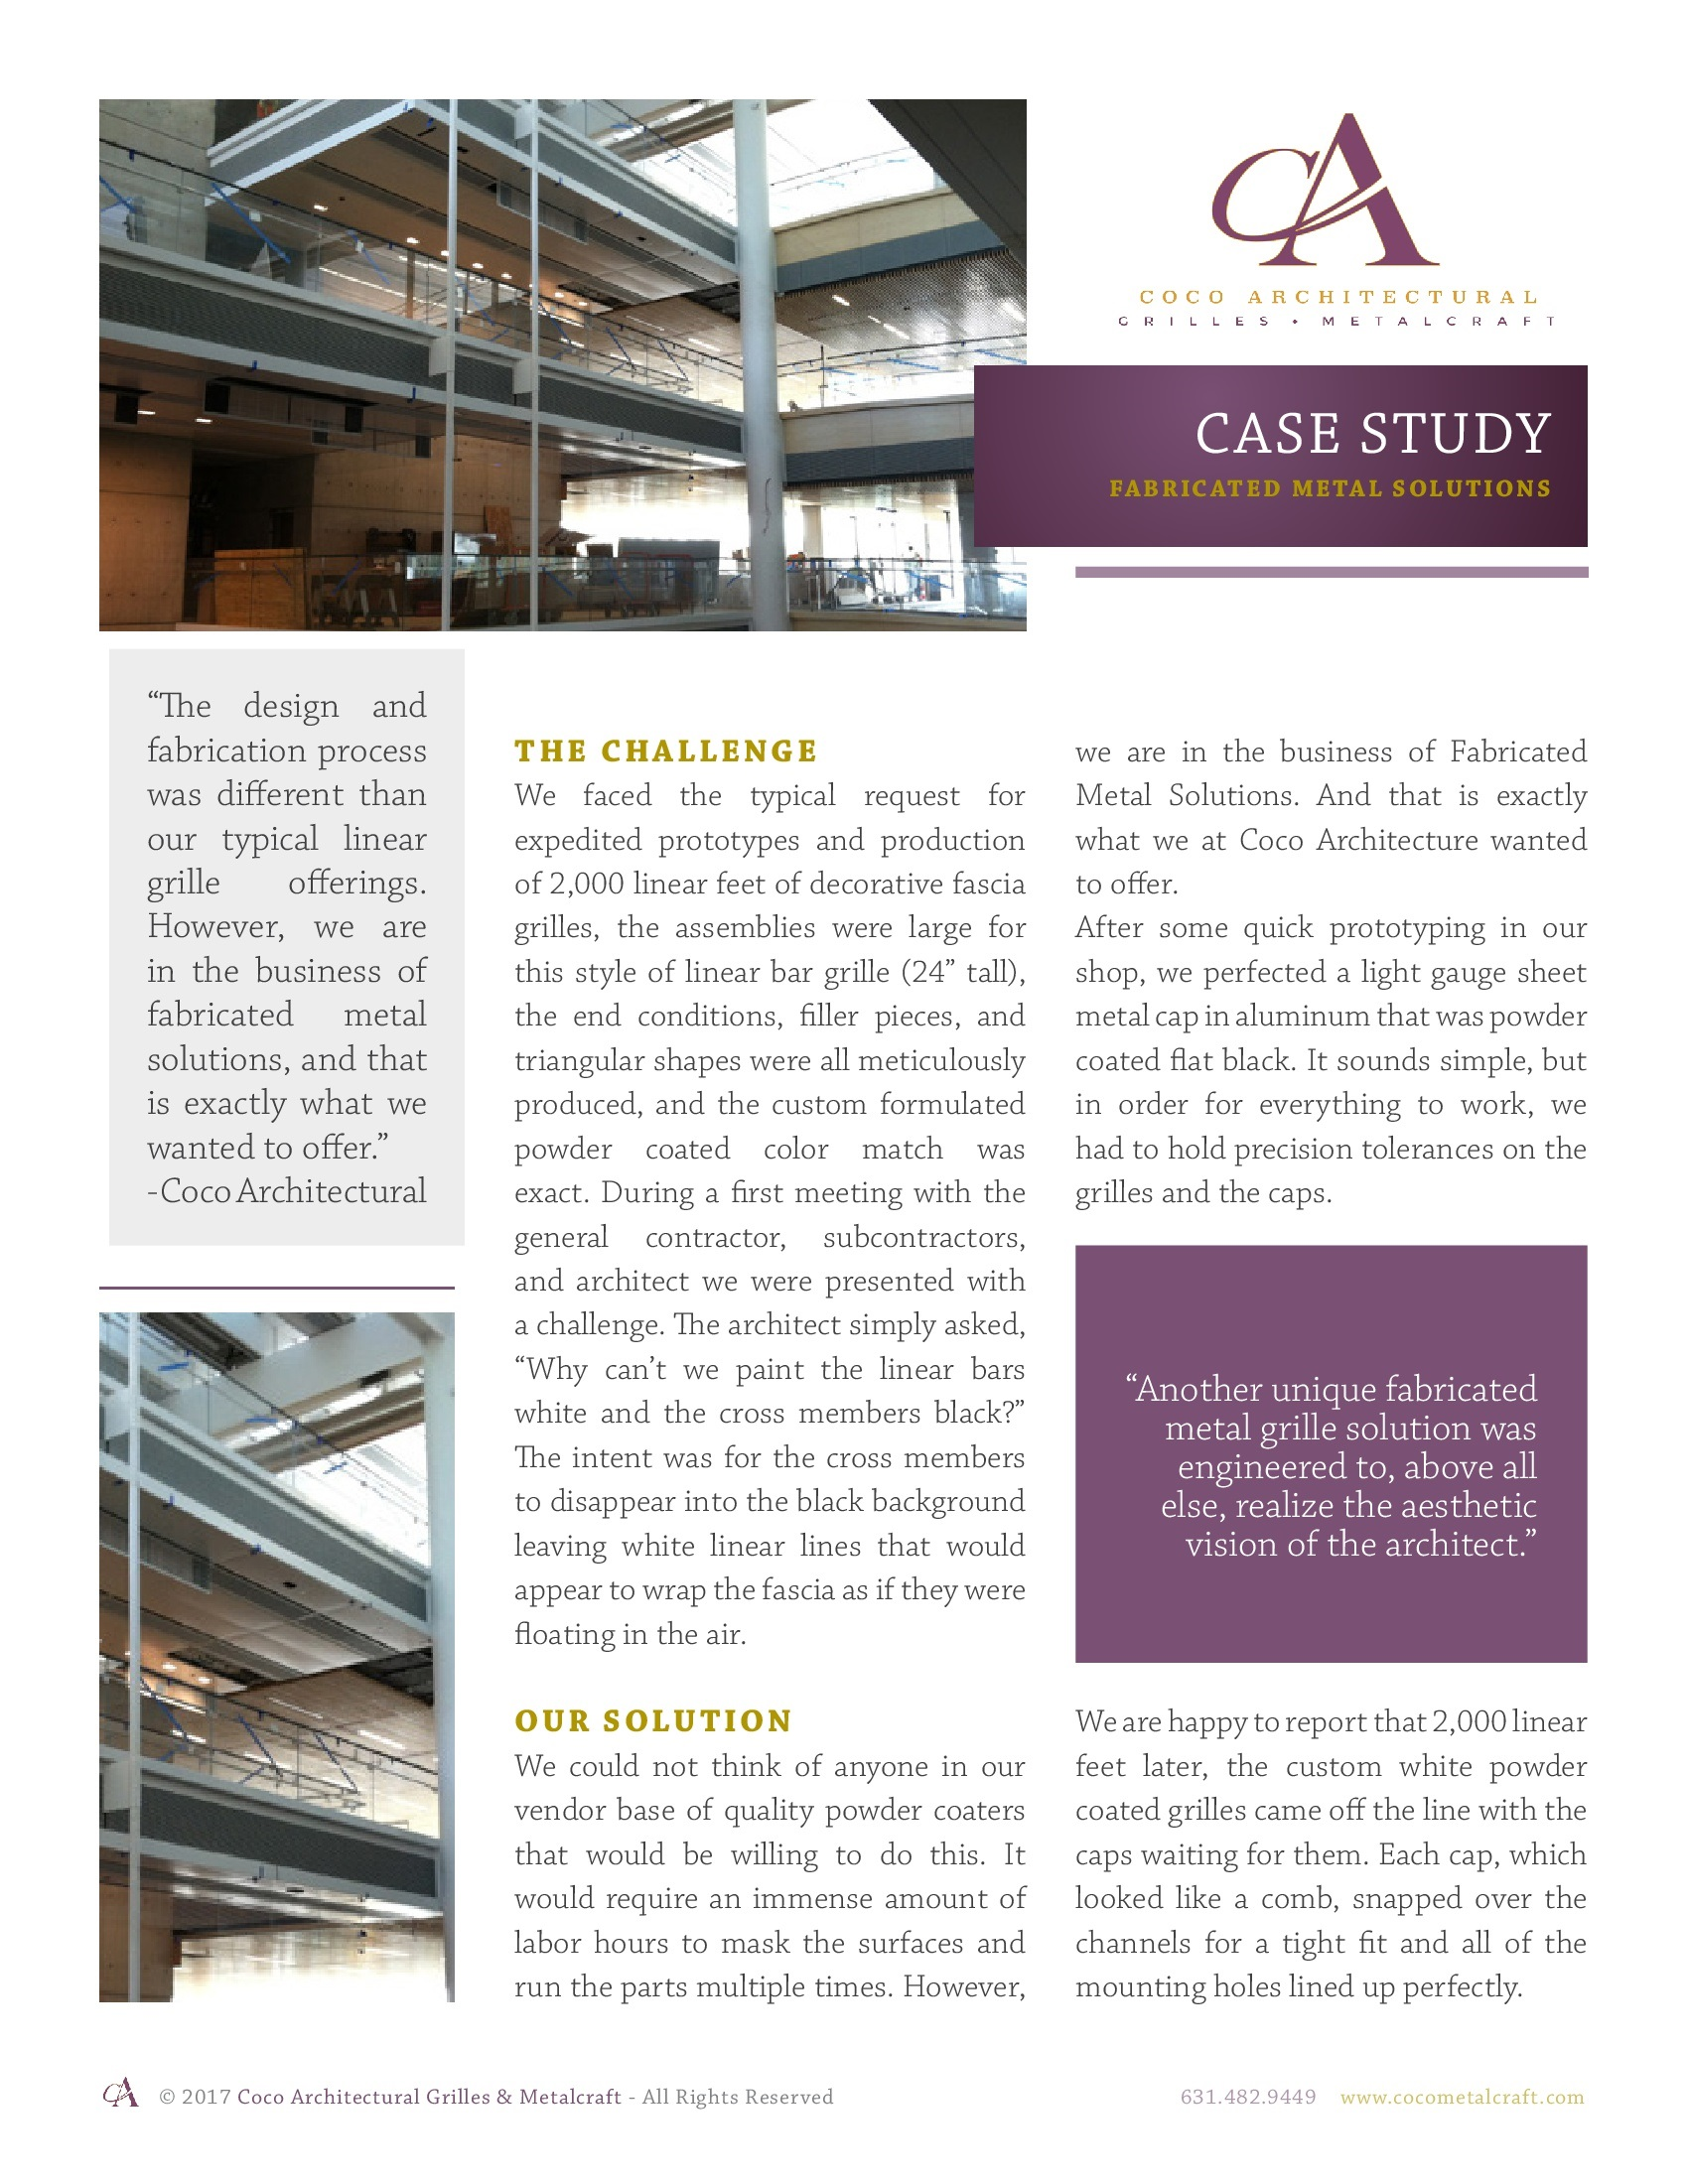 Custom Fabricated Metal Solutions Case Study